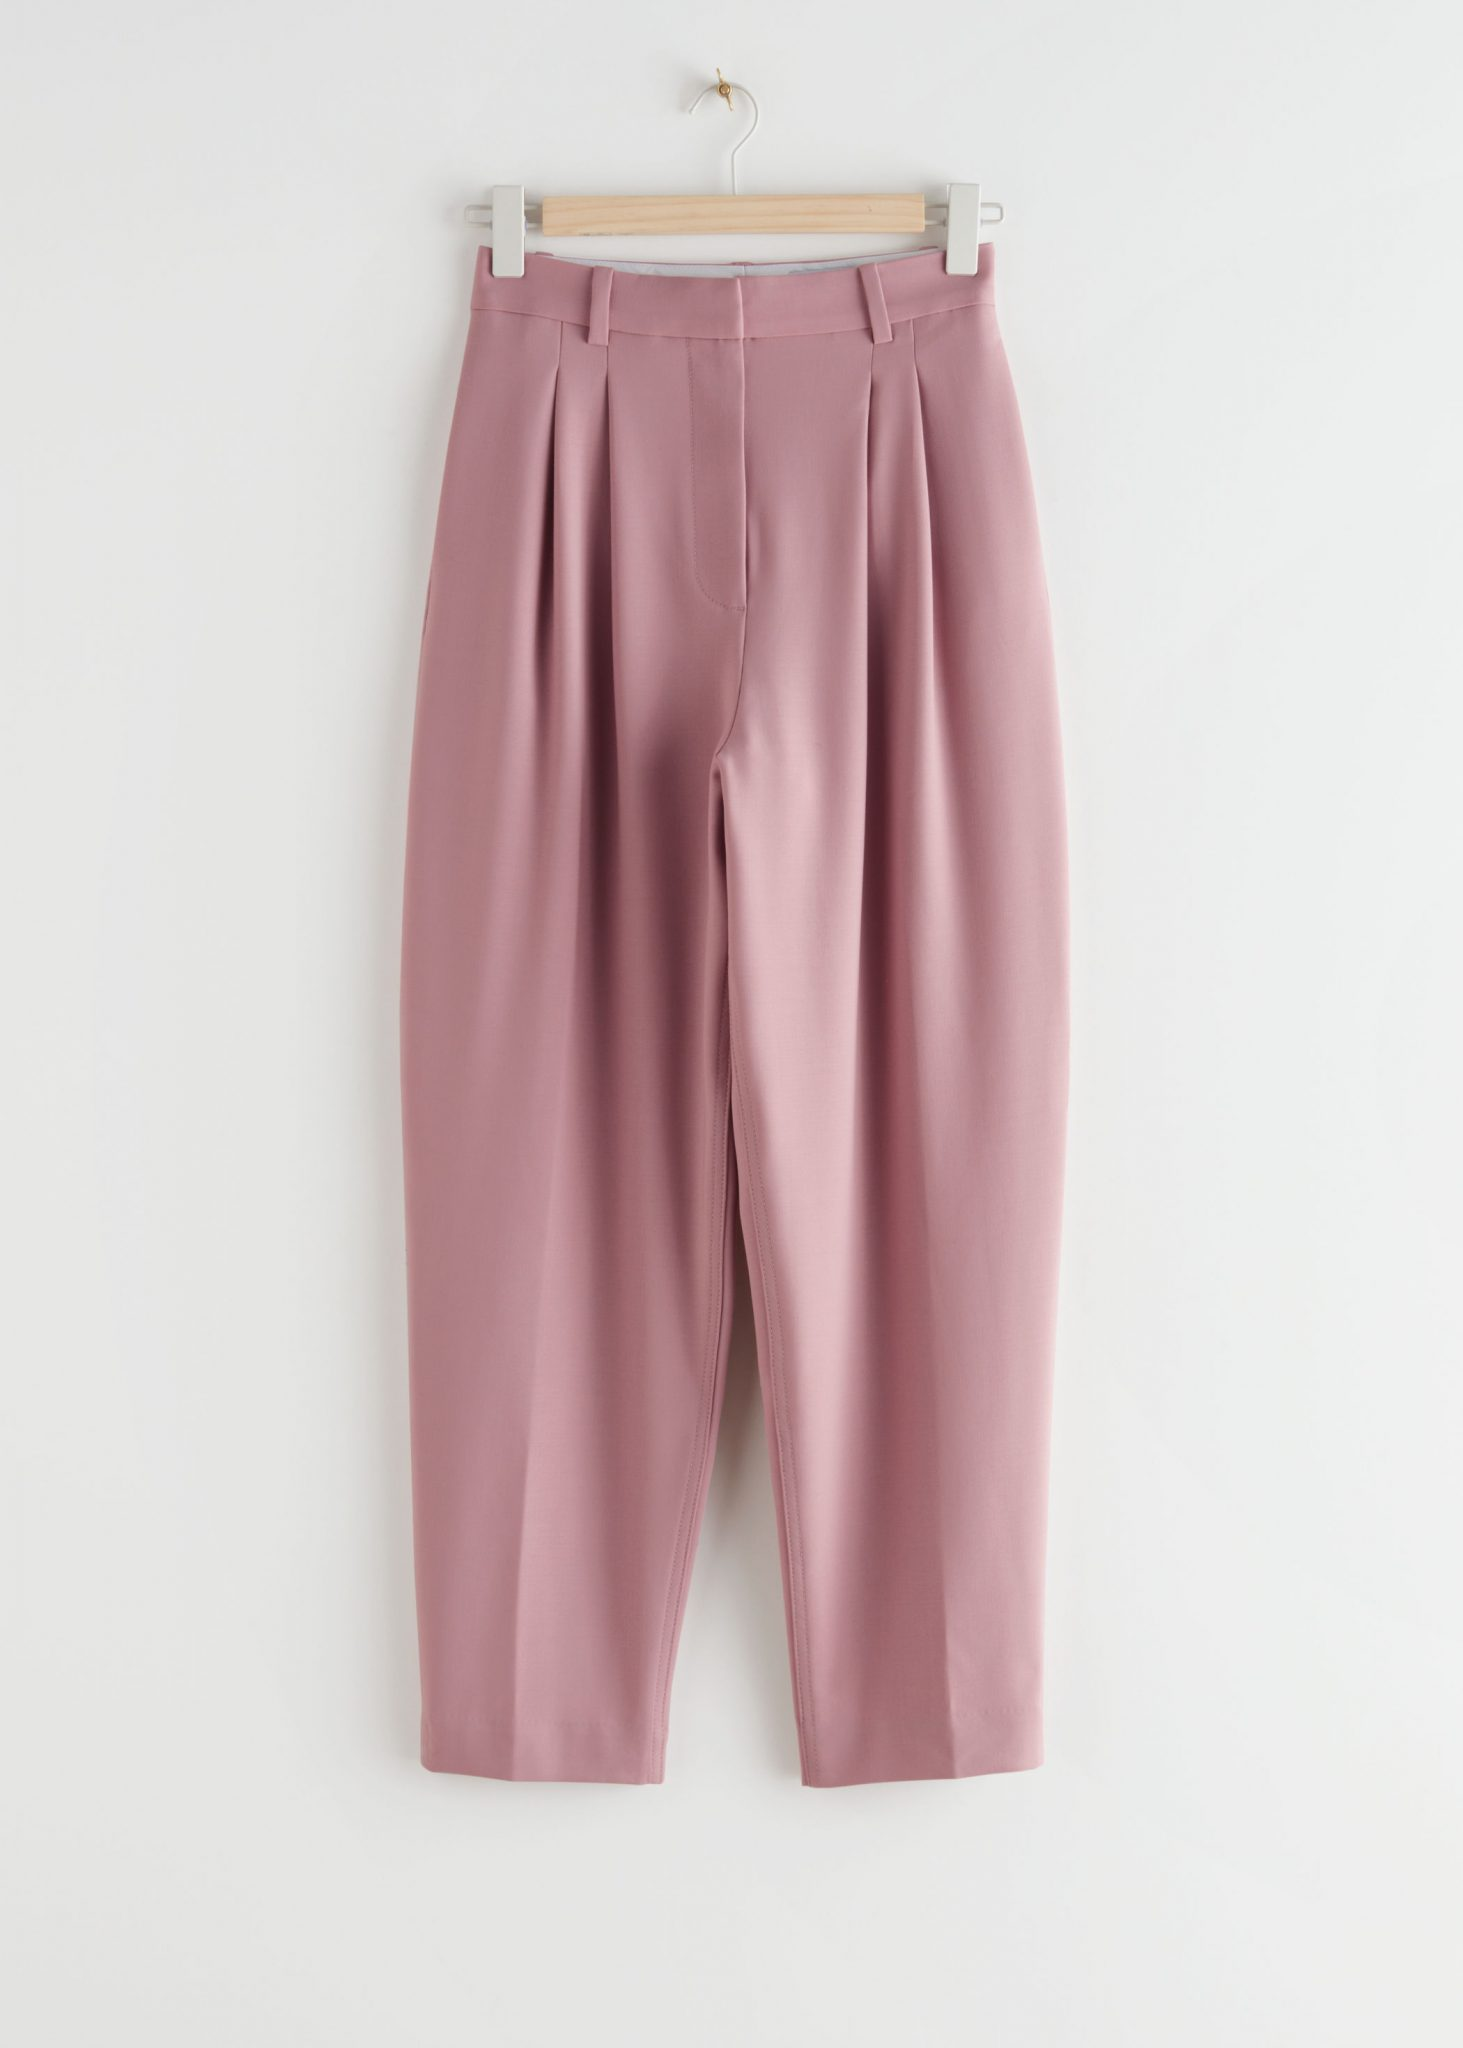 Tapered Wool Blend Trousers, & Other Stories, £95.00